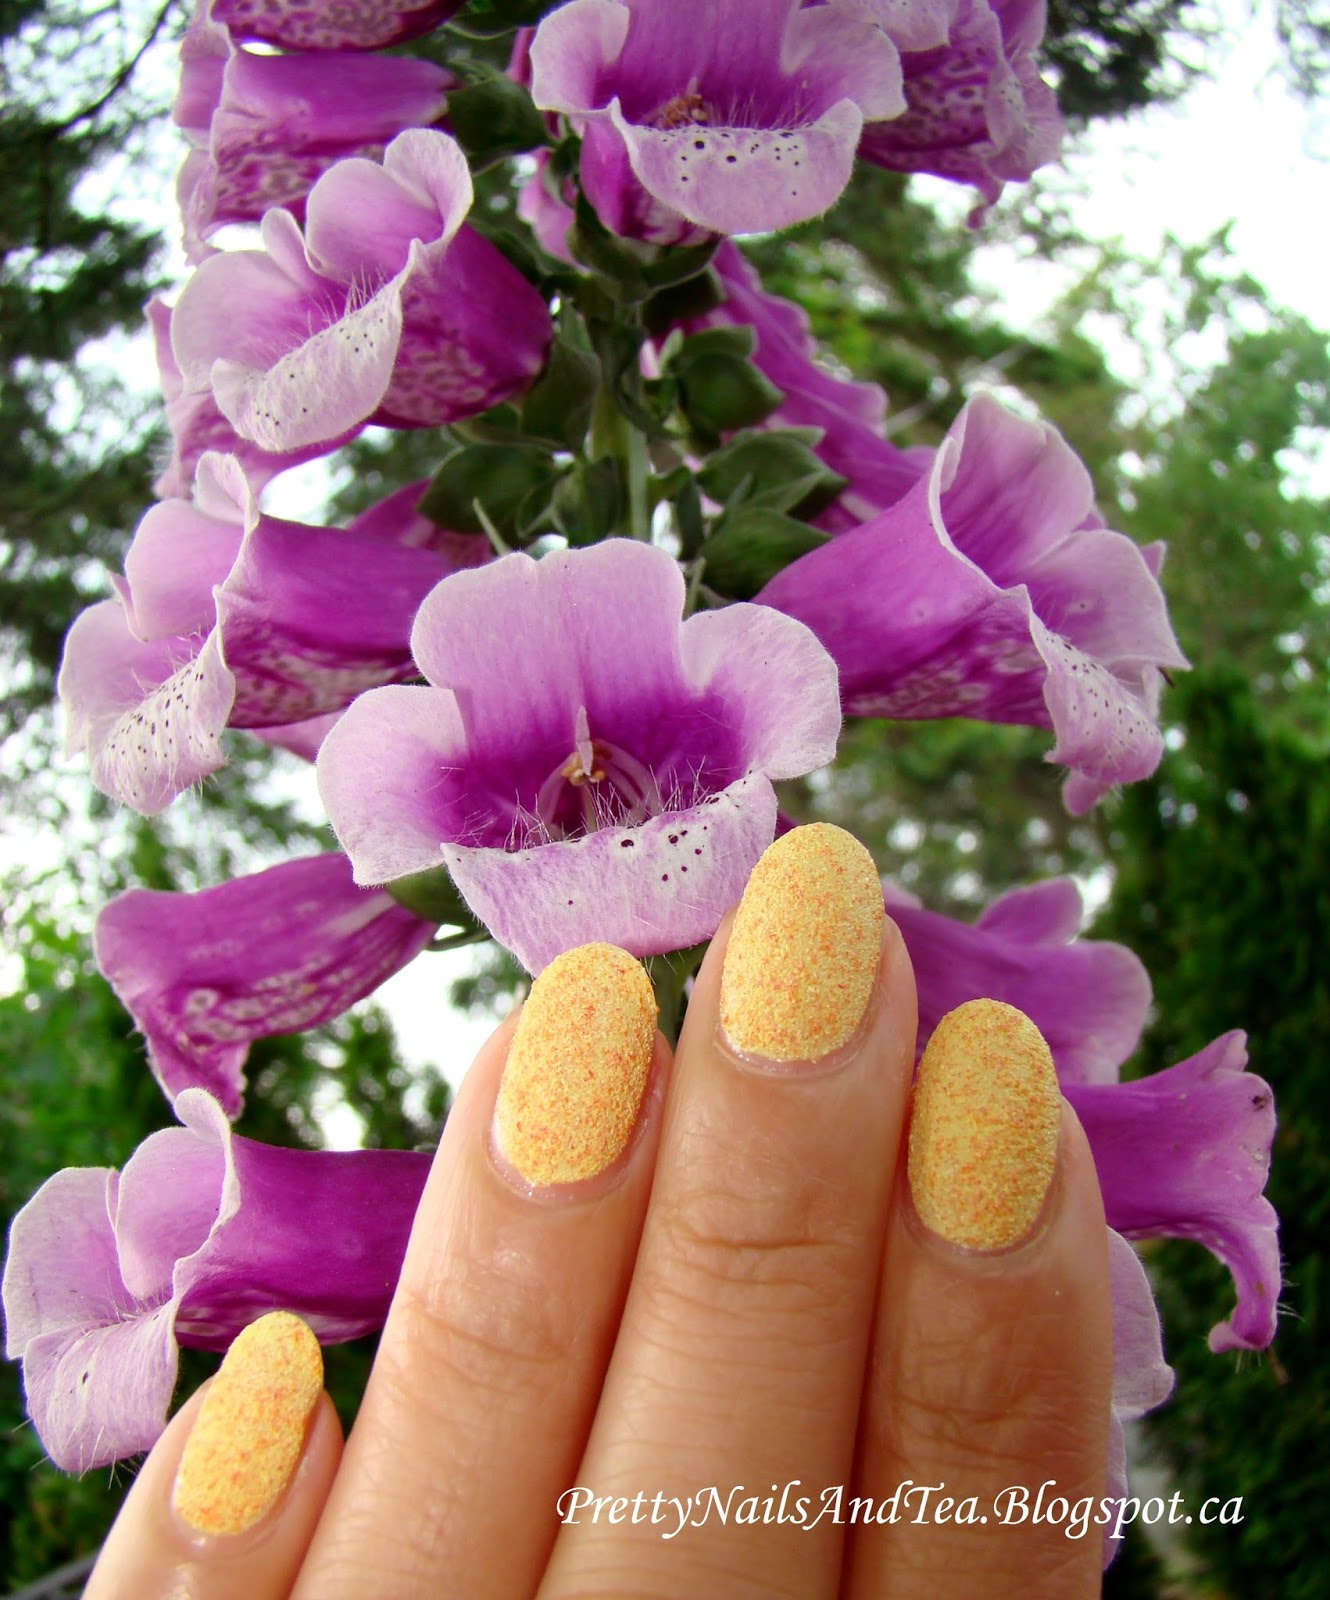 Flowers and Nails | PrettyNailsAndTea.blogspot.ca